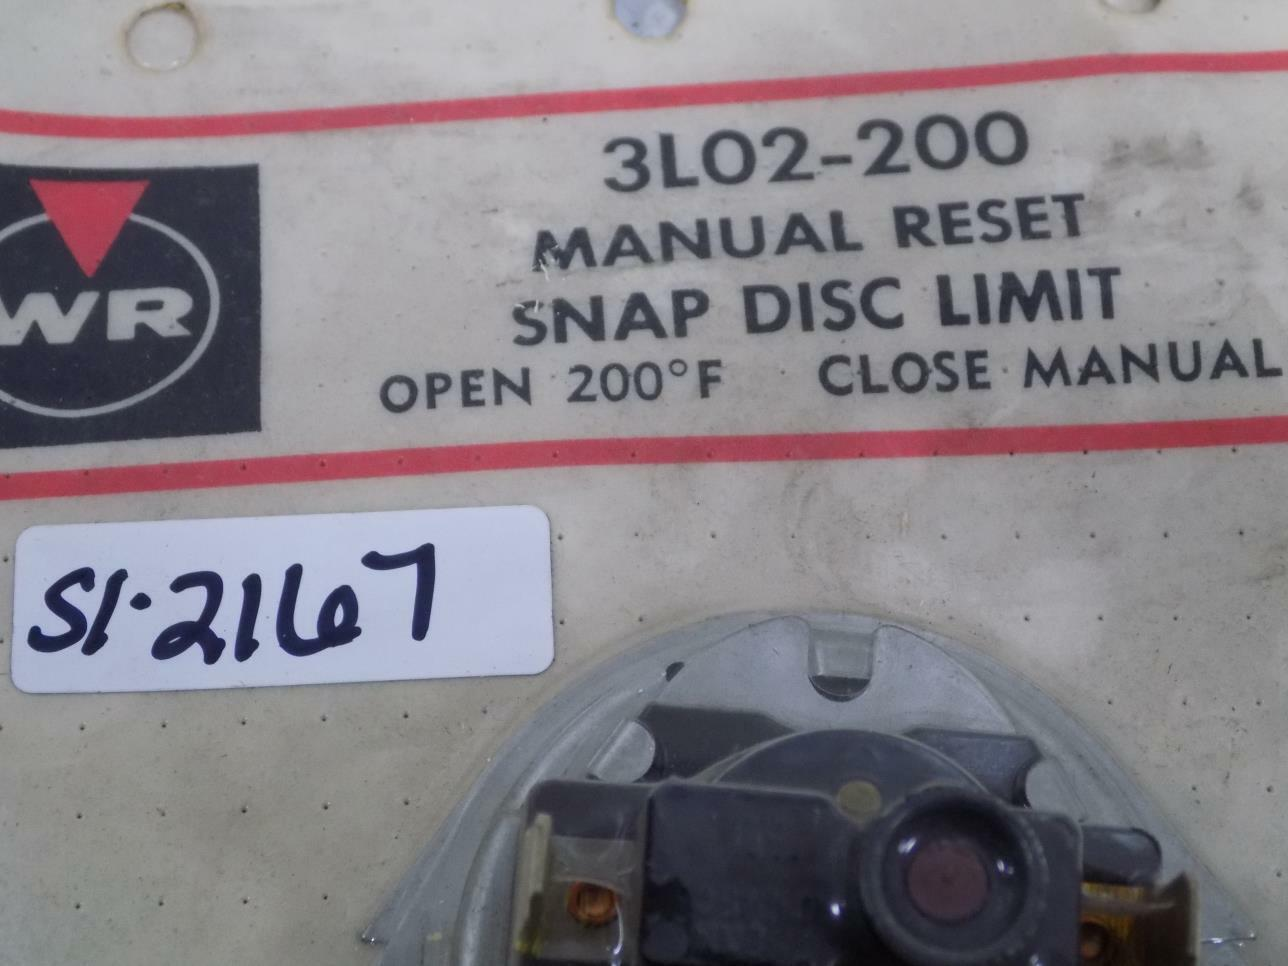 White-Rodgers 3L02-200 imit Disc 200F Manual Reset